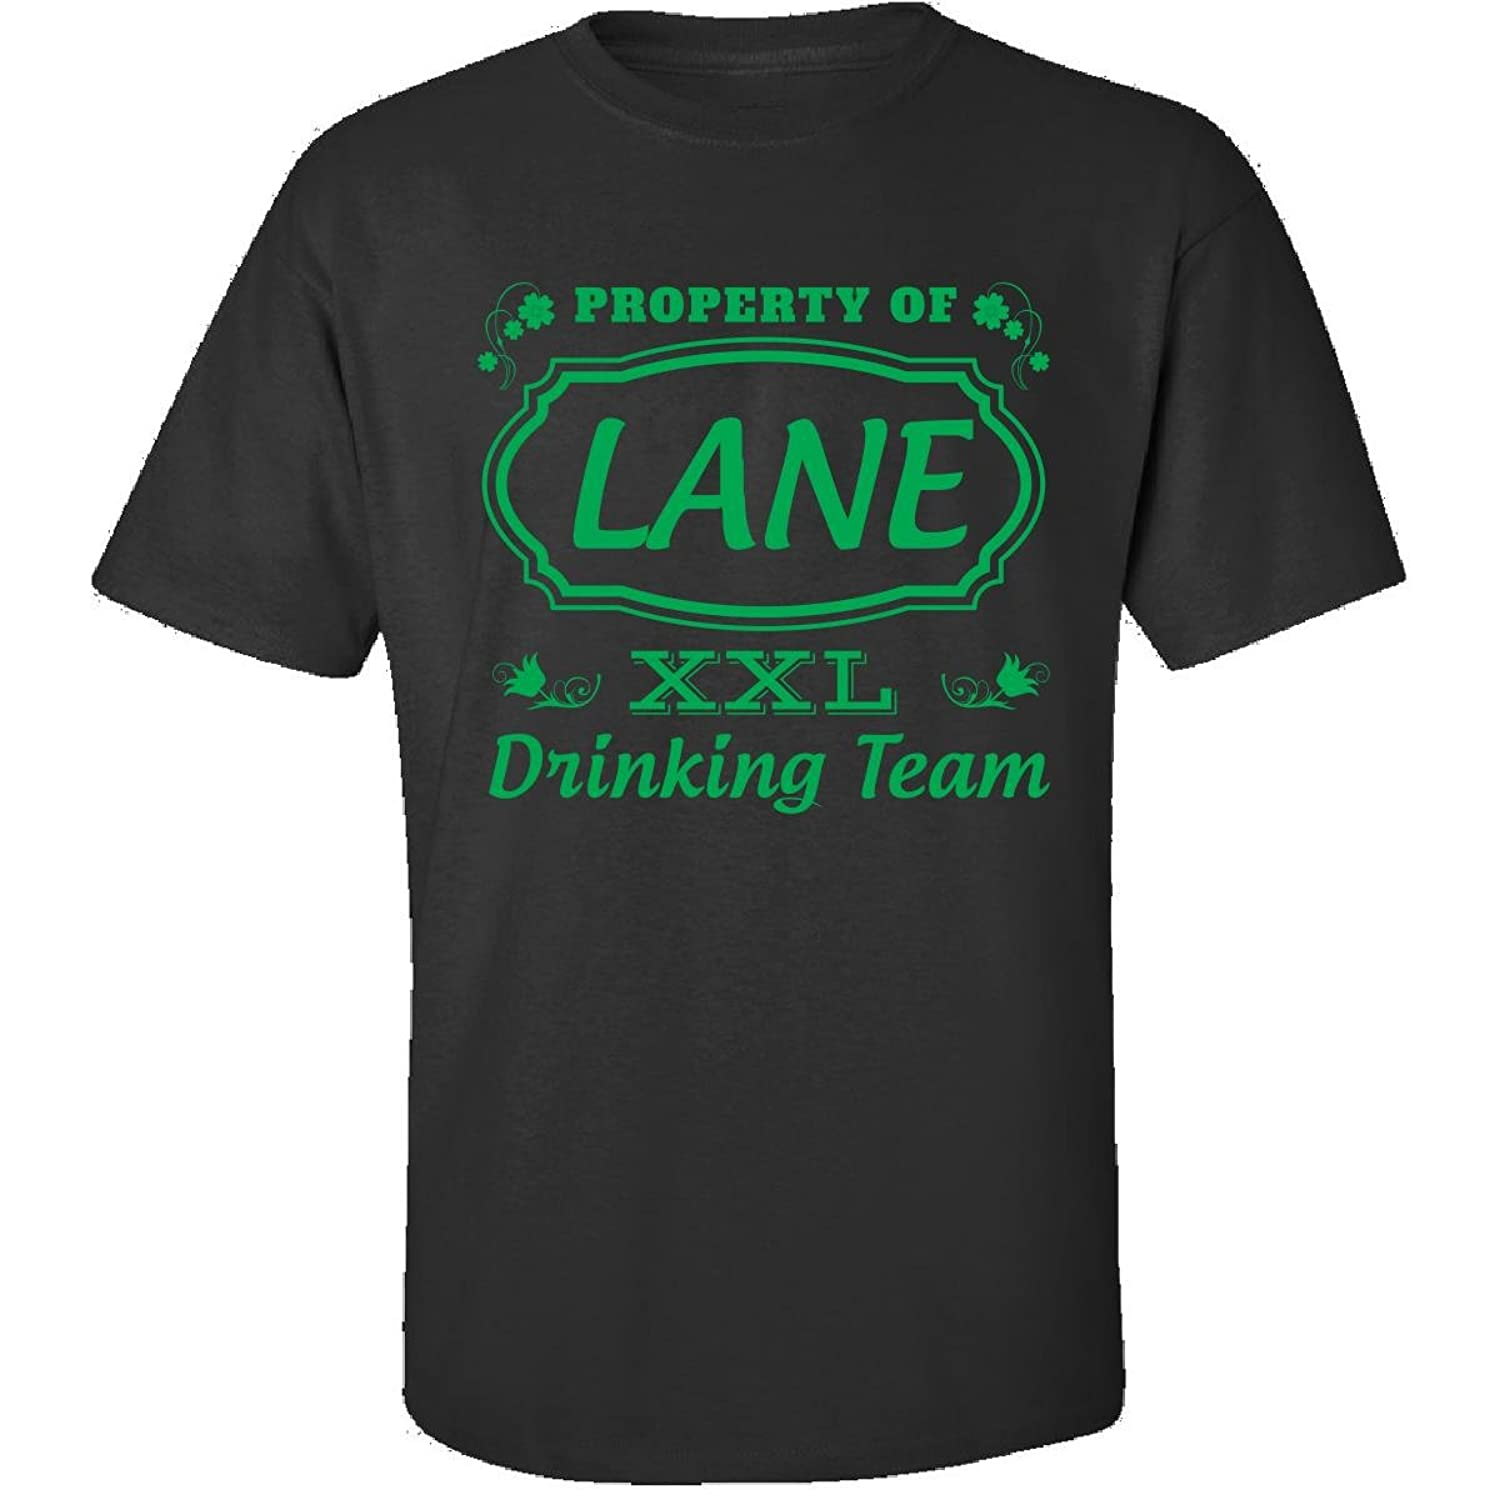 Property Of Lane St Patrick Day Beer Drinking Team - Adult Shirt